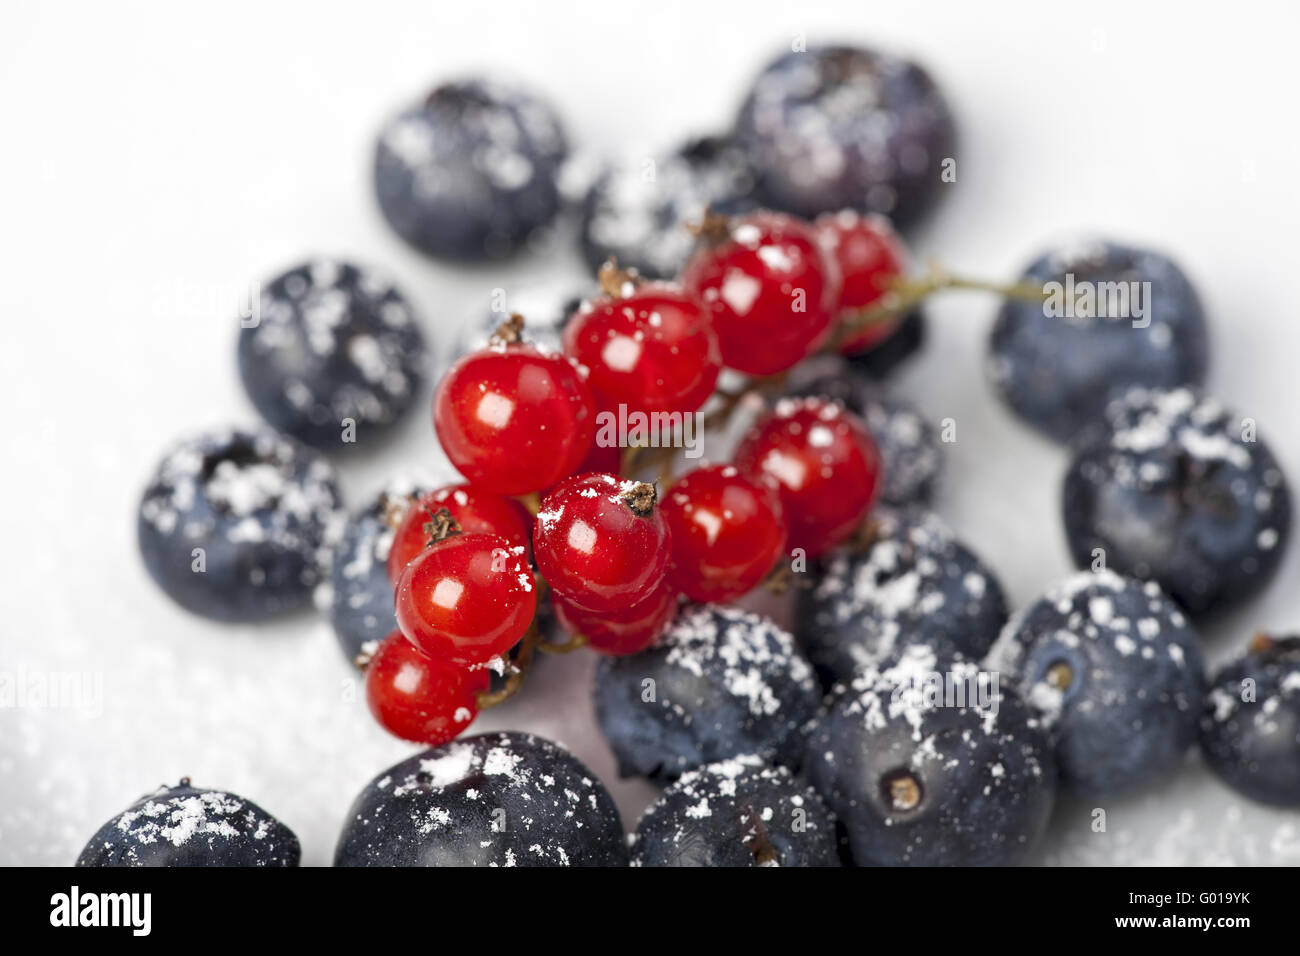 blueberries and red currant with icing sugar on white background - Stock Image